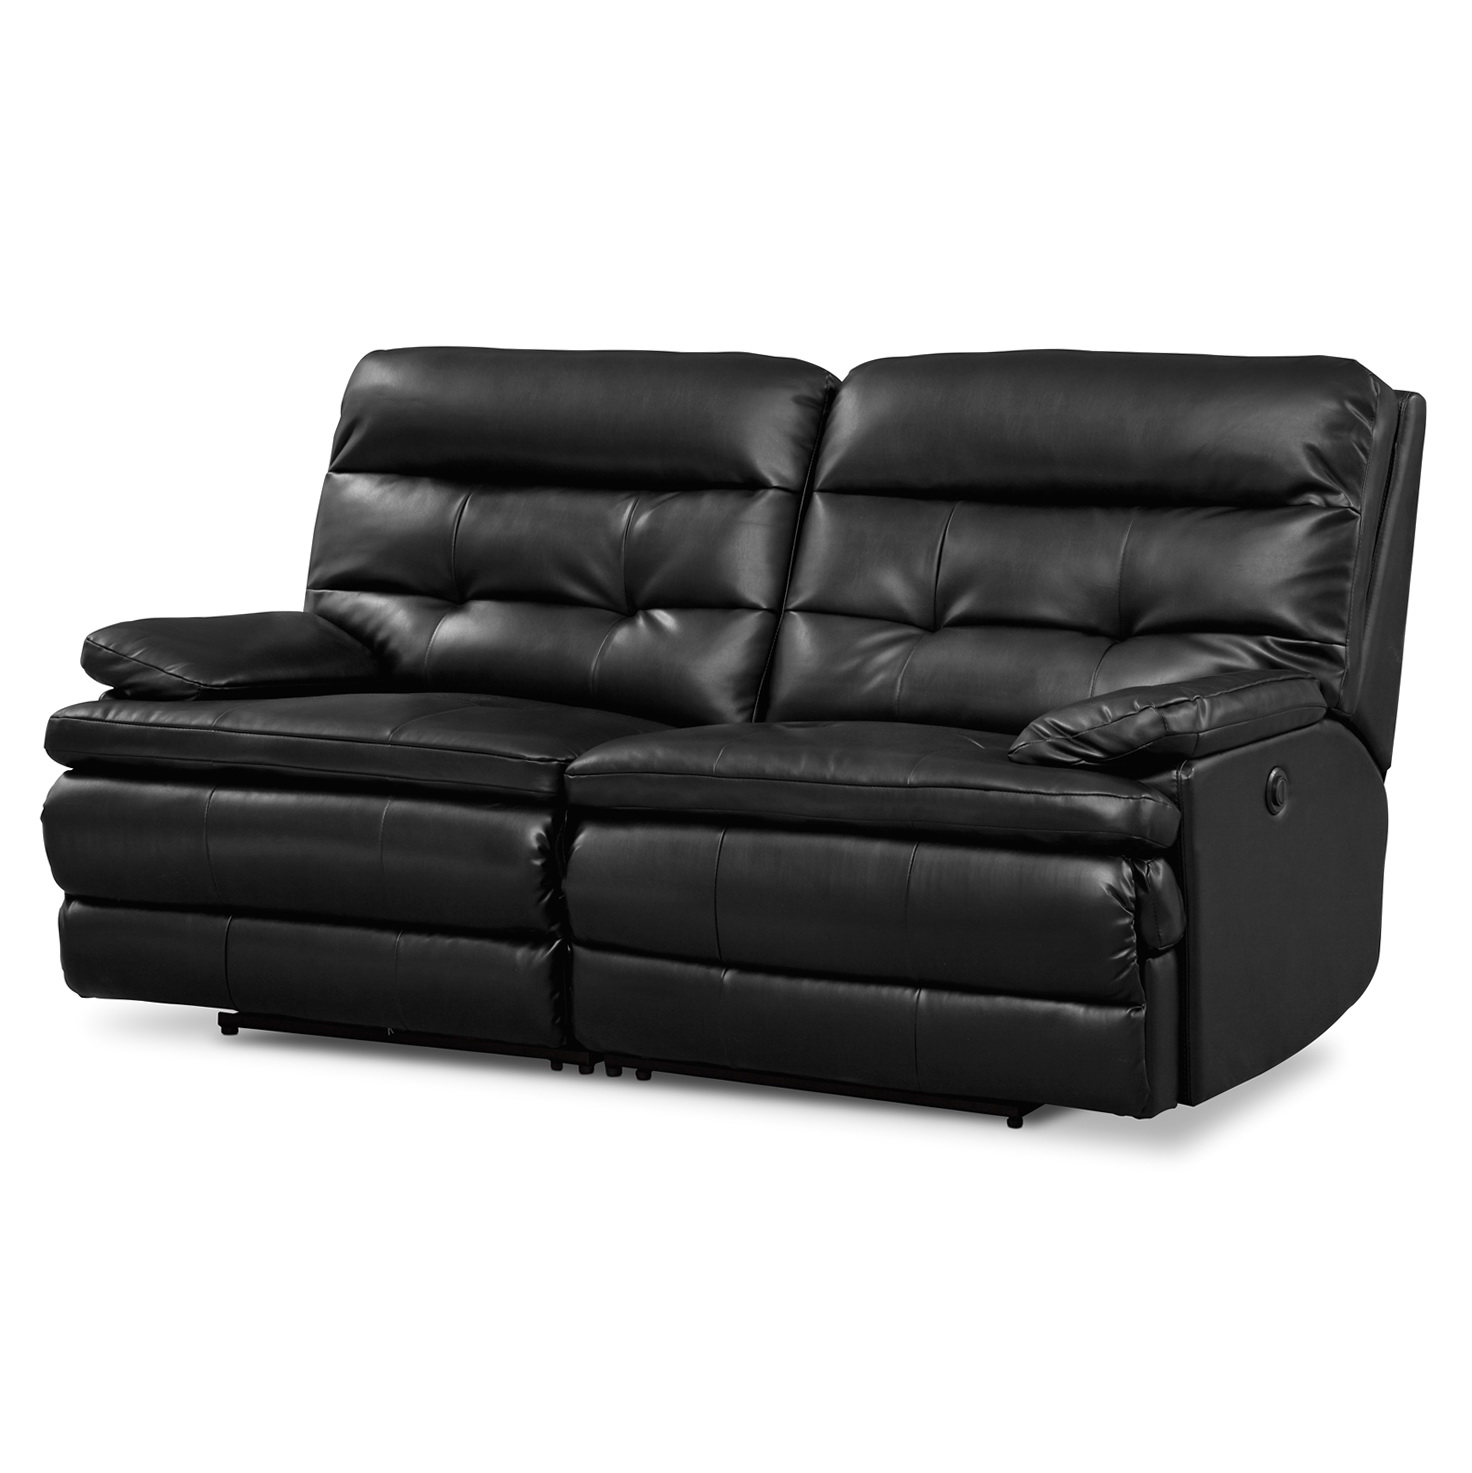 Power Reclining Loveseat Costco Home Design Ideas